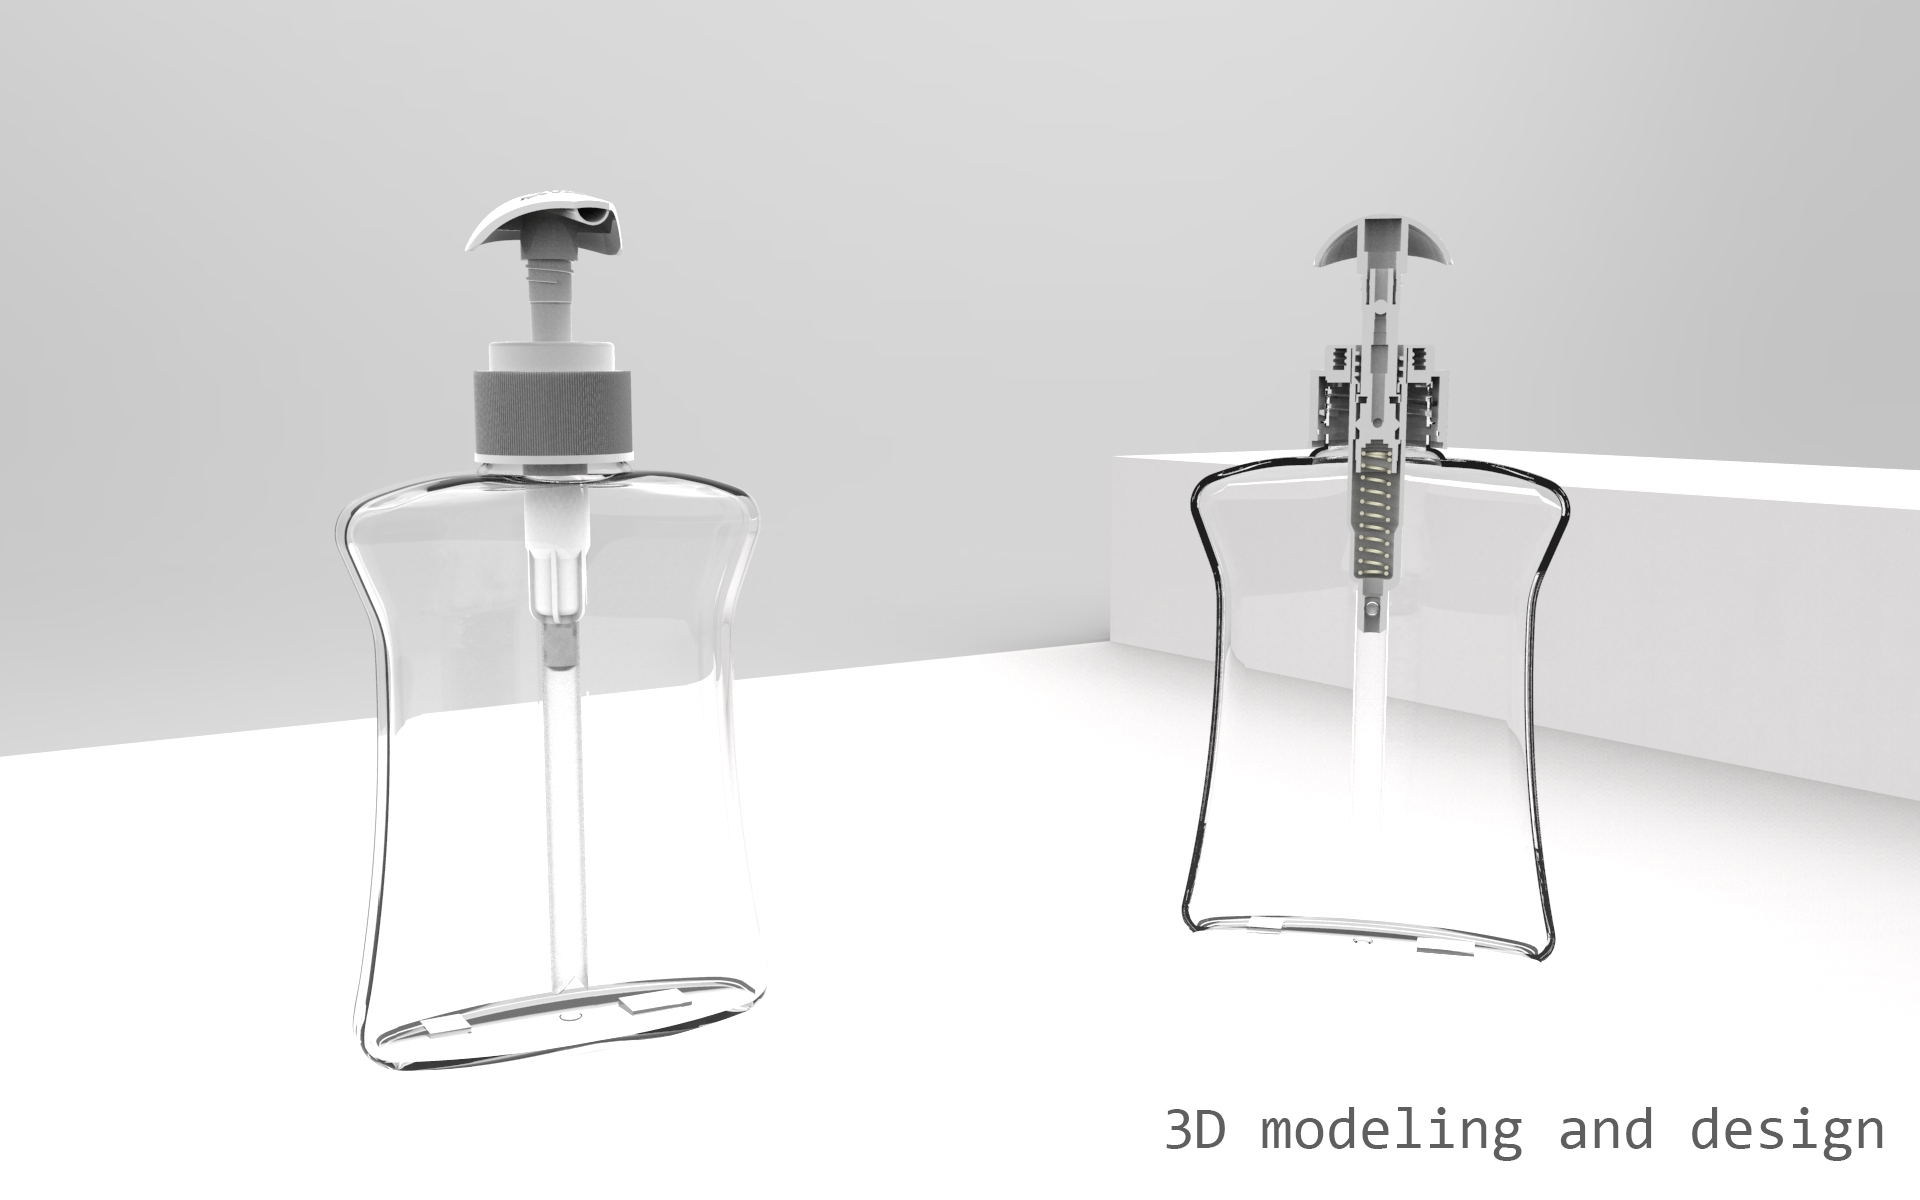 3d modeling and design zeeppomp.jpg